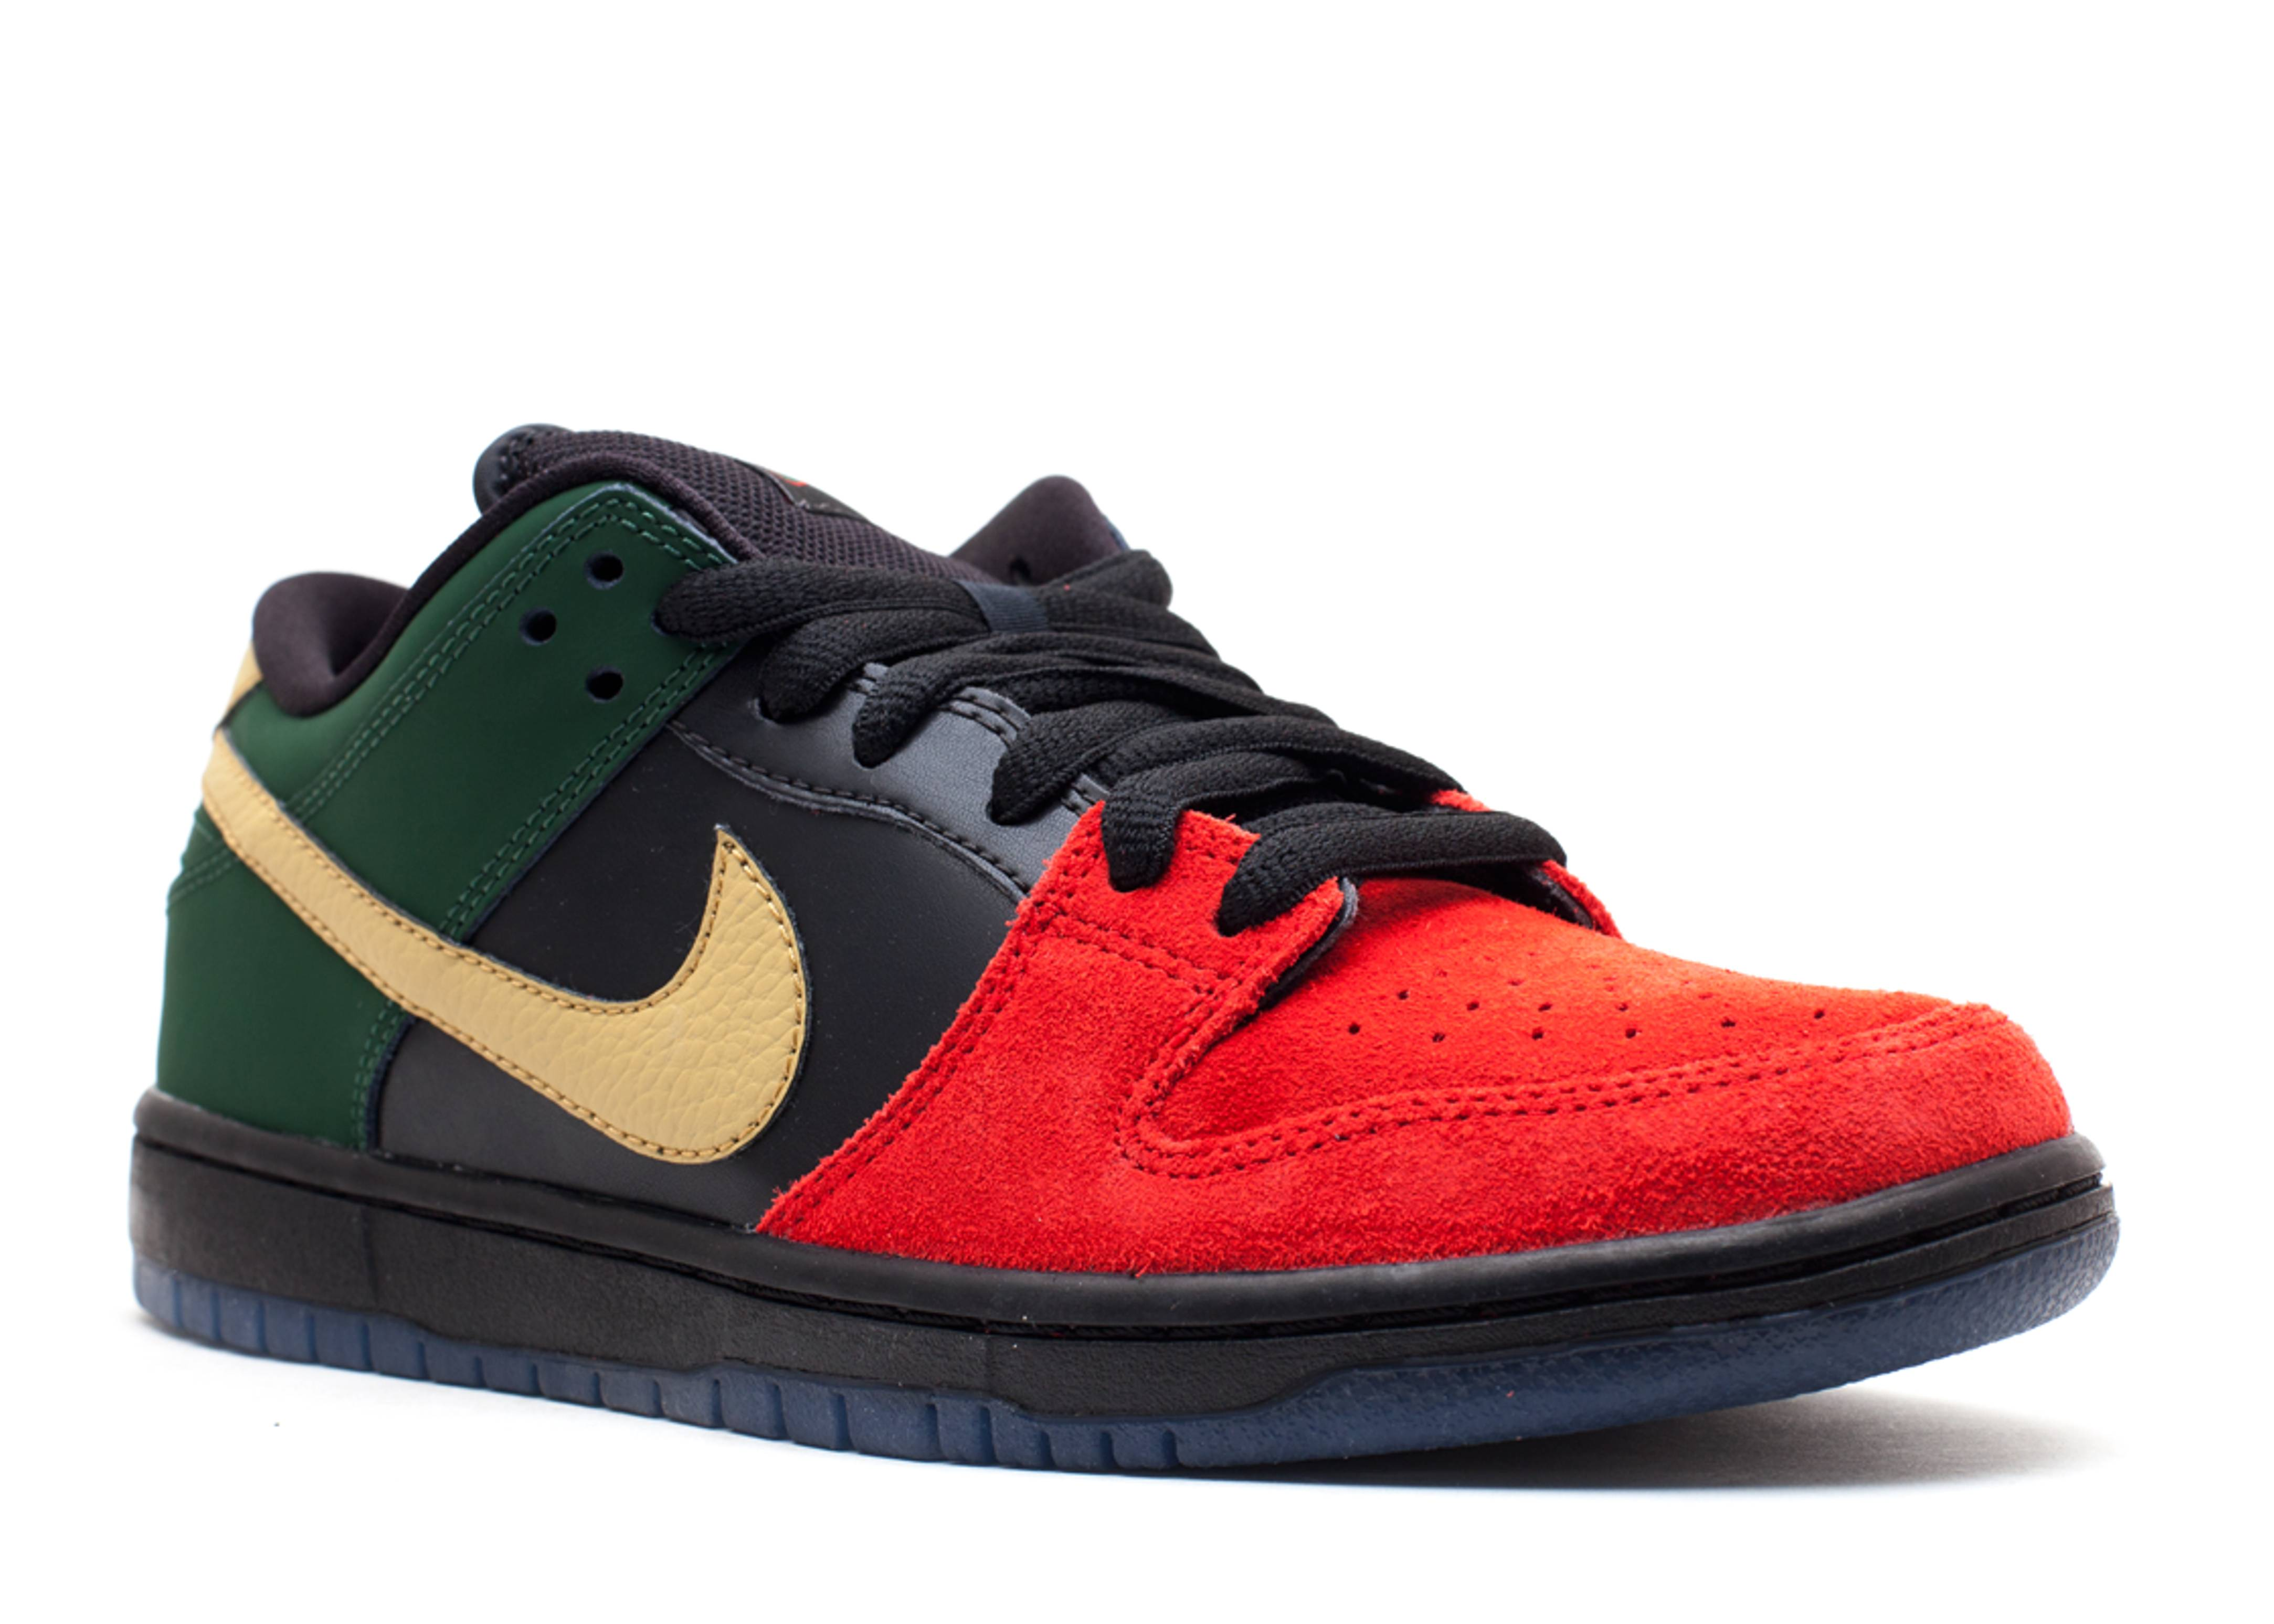 separation shoes e5954 c079b green nike dunk sb Discover skate styles inspired by the pros with men s  skate shoes ...